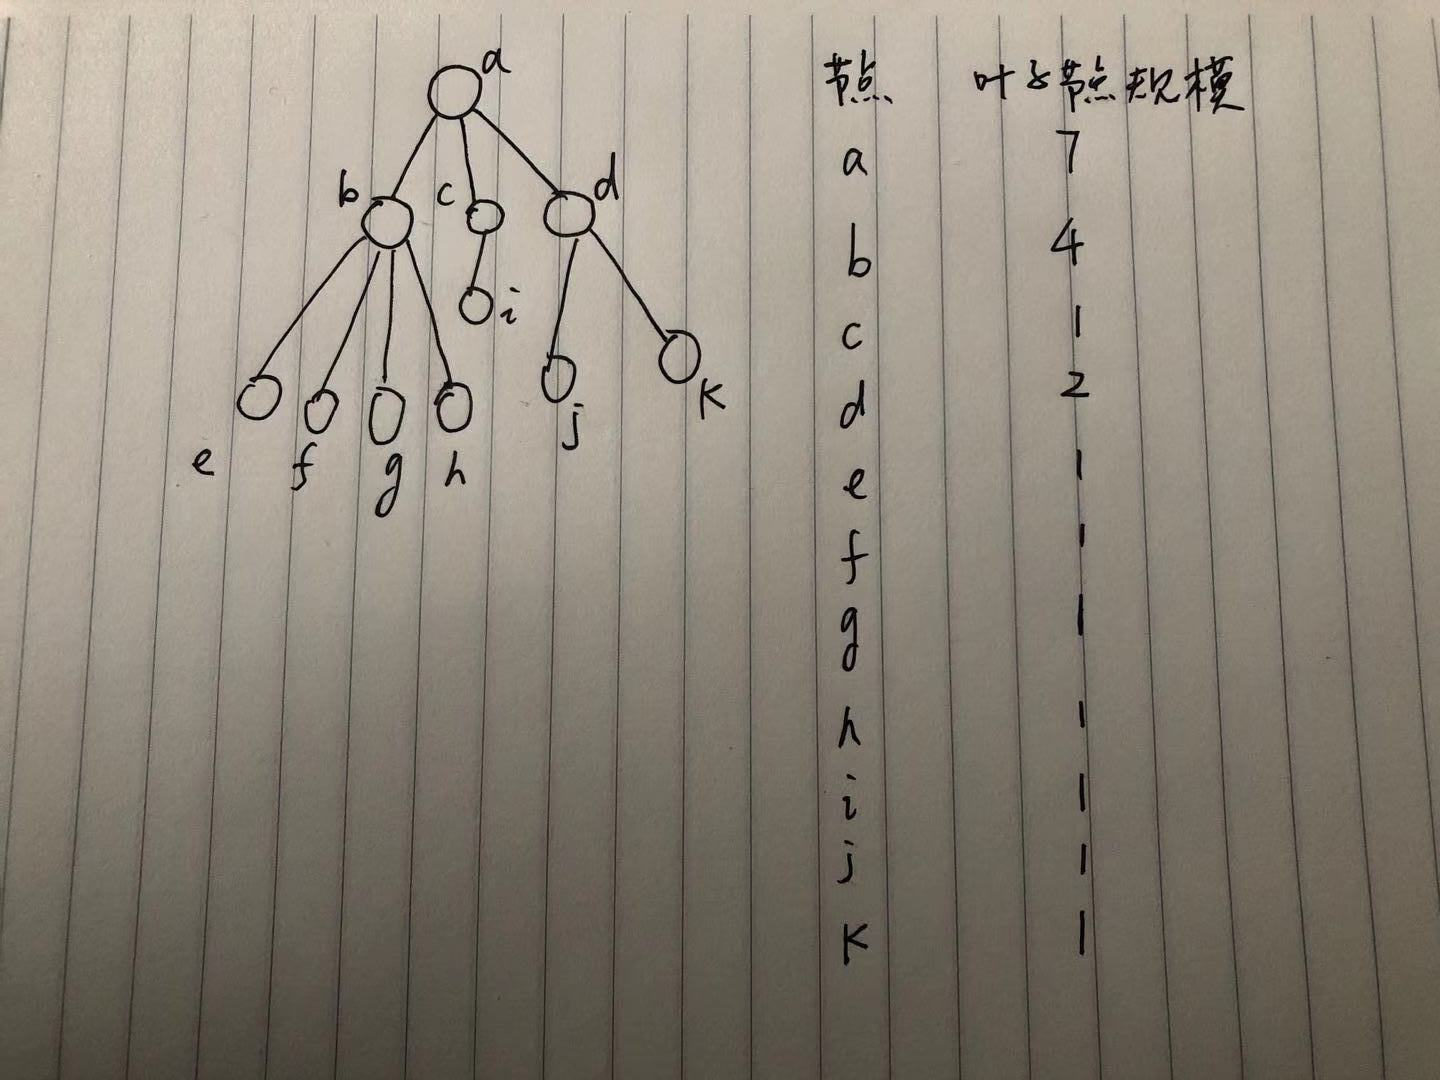 sorted-tree-nodes